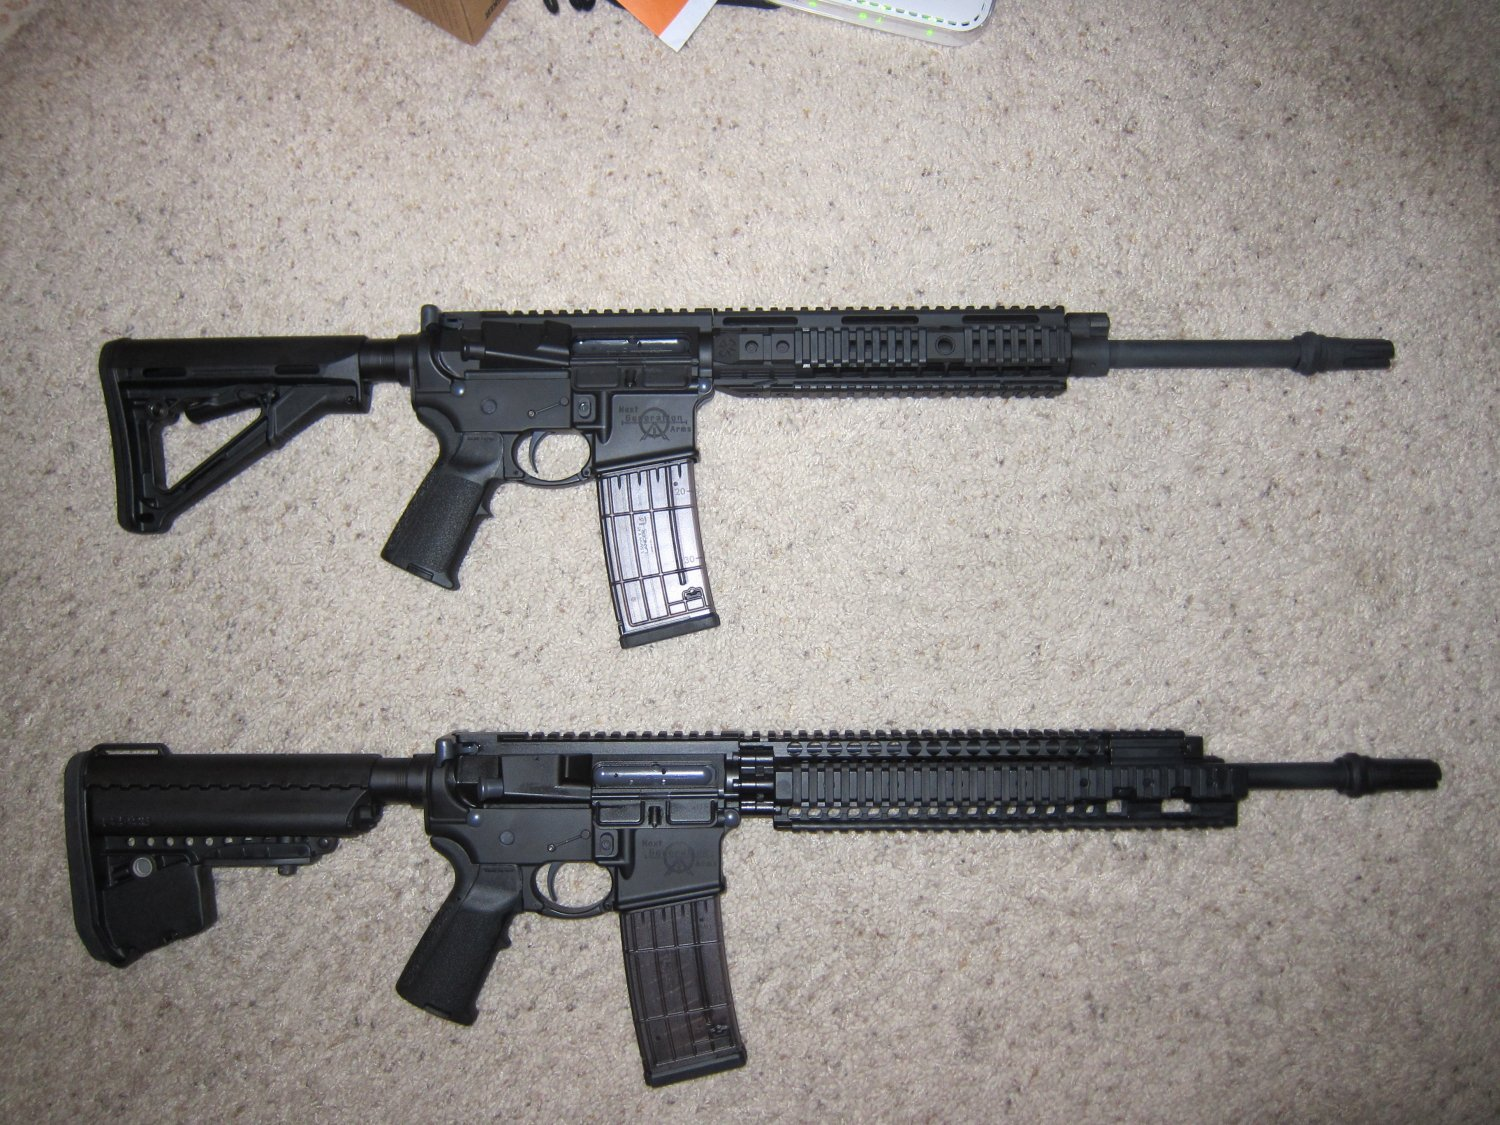 <!--:en-->A Tale of Two Custom Mid-Length AR Carbines: The Frankengun (Frankencarbine) Project<!--:-->